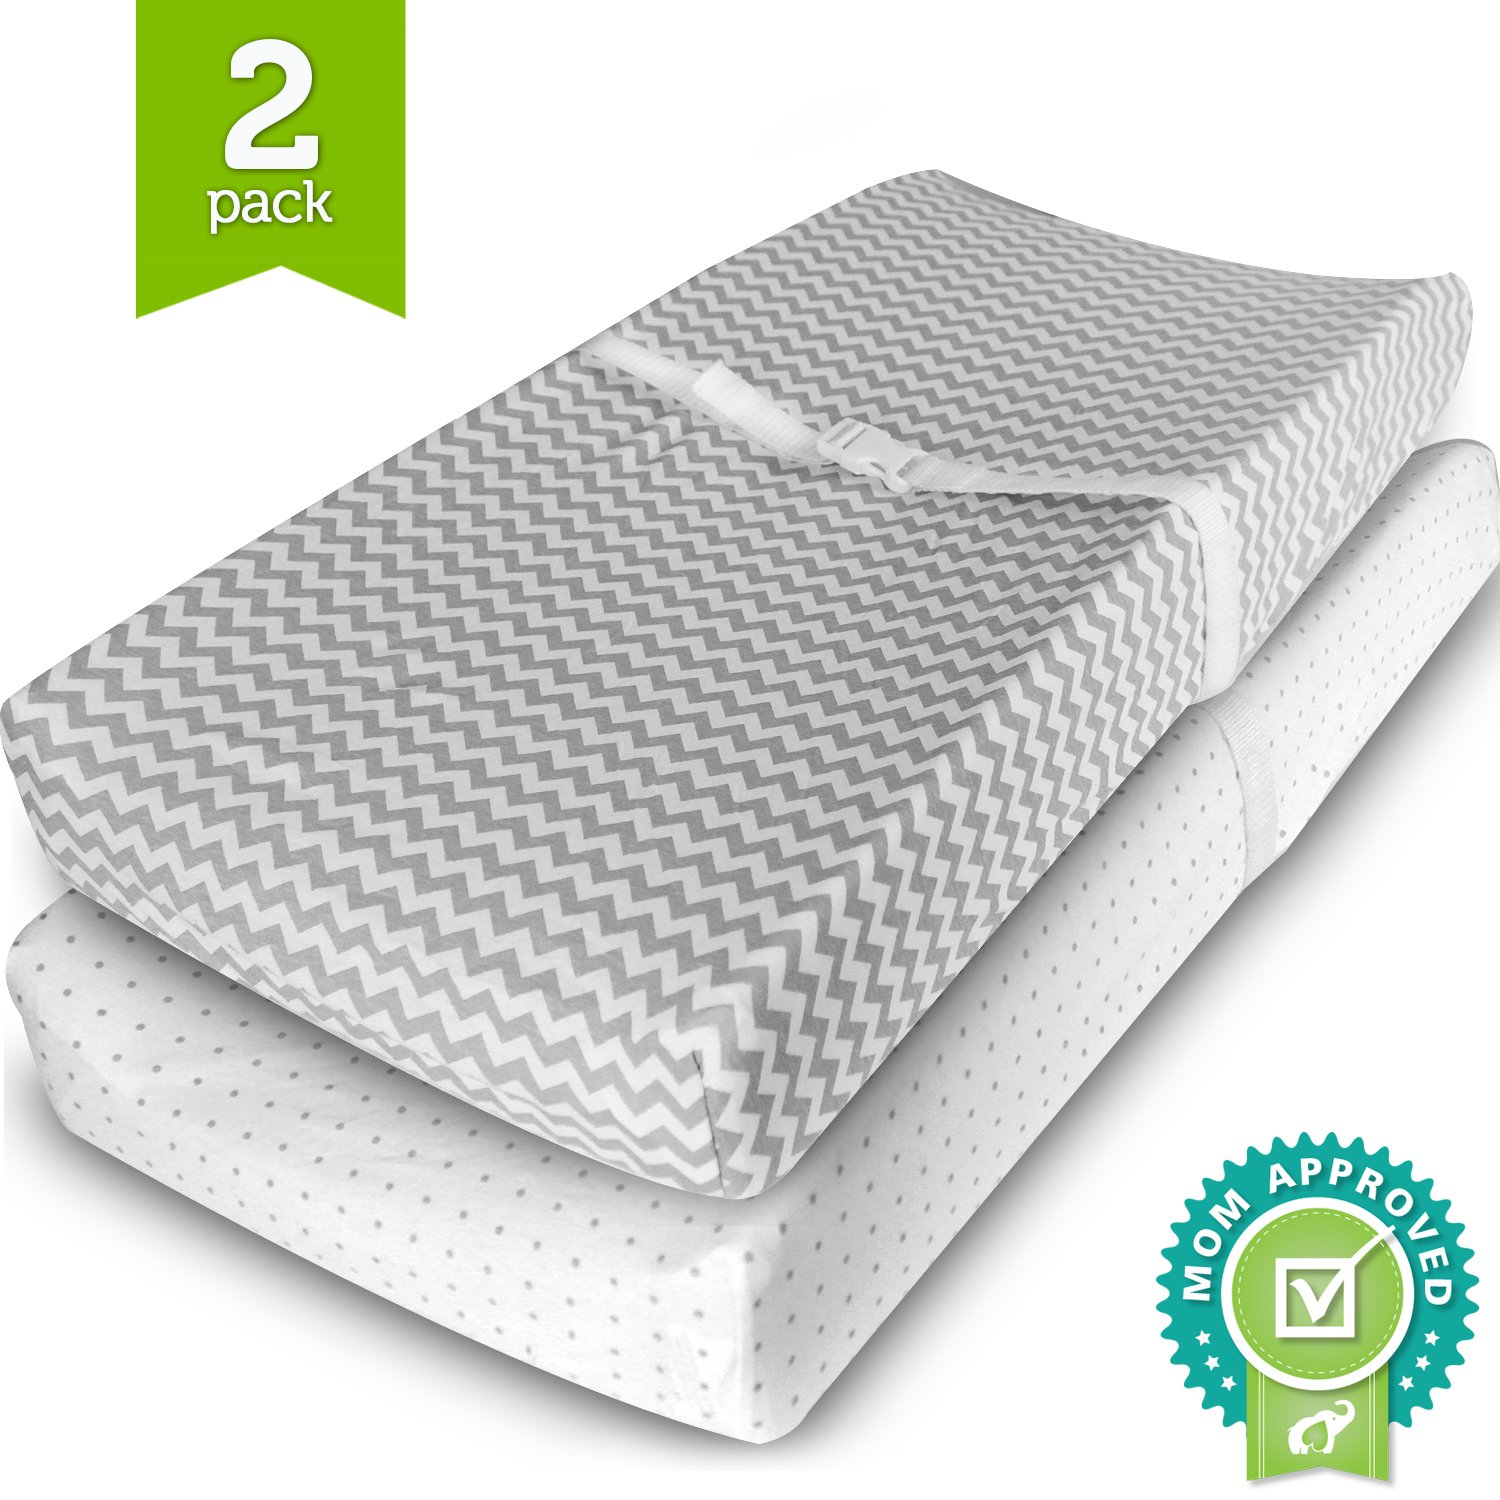 Ziggy Baby Changing Pad Cover, Cradle Bassinet Sheets Fitted Jersey Cotton (2 Pack), Grey/White, 2 Pack